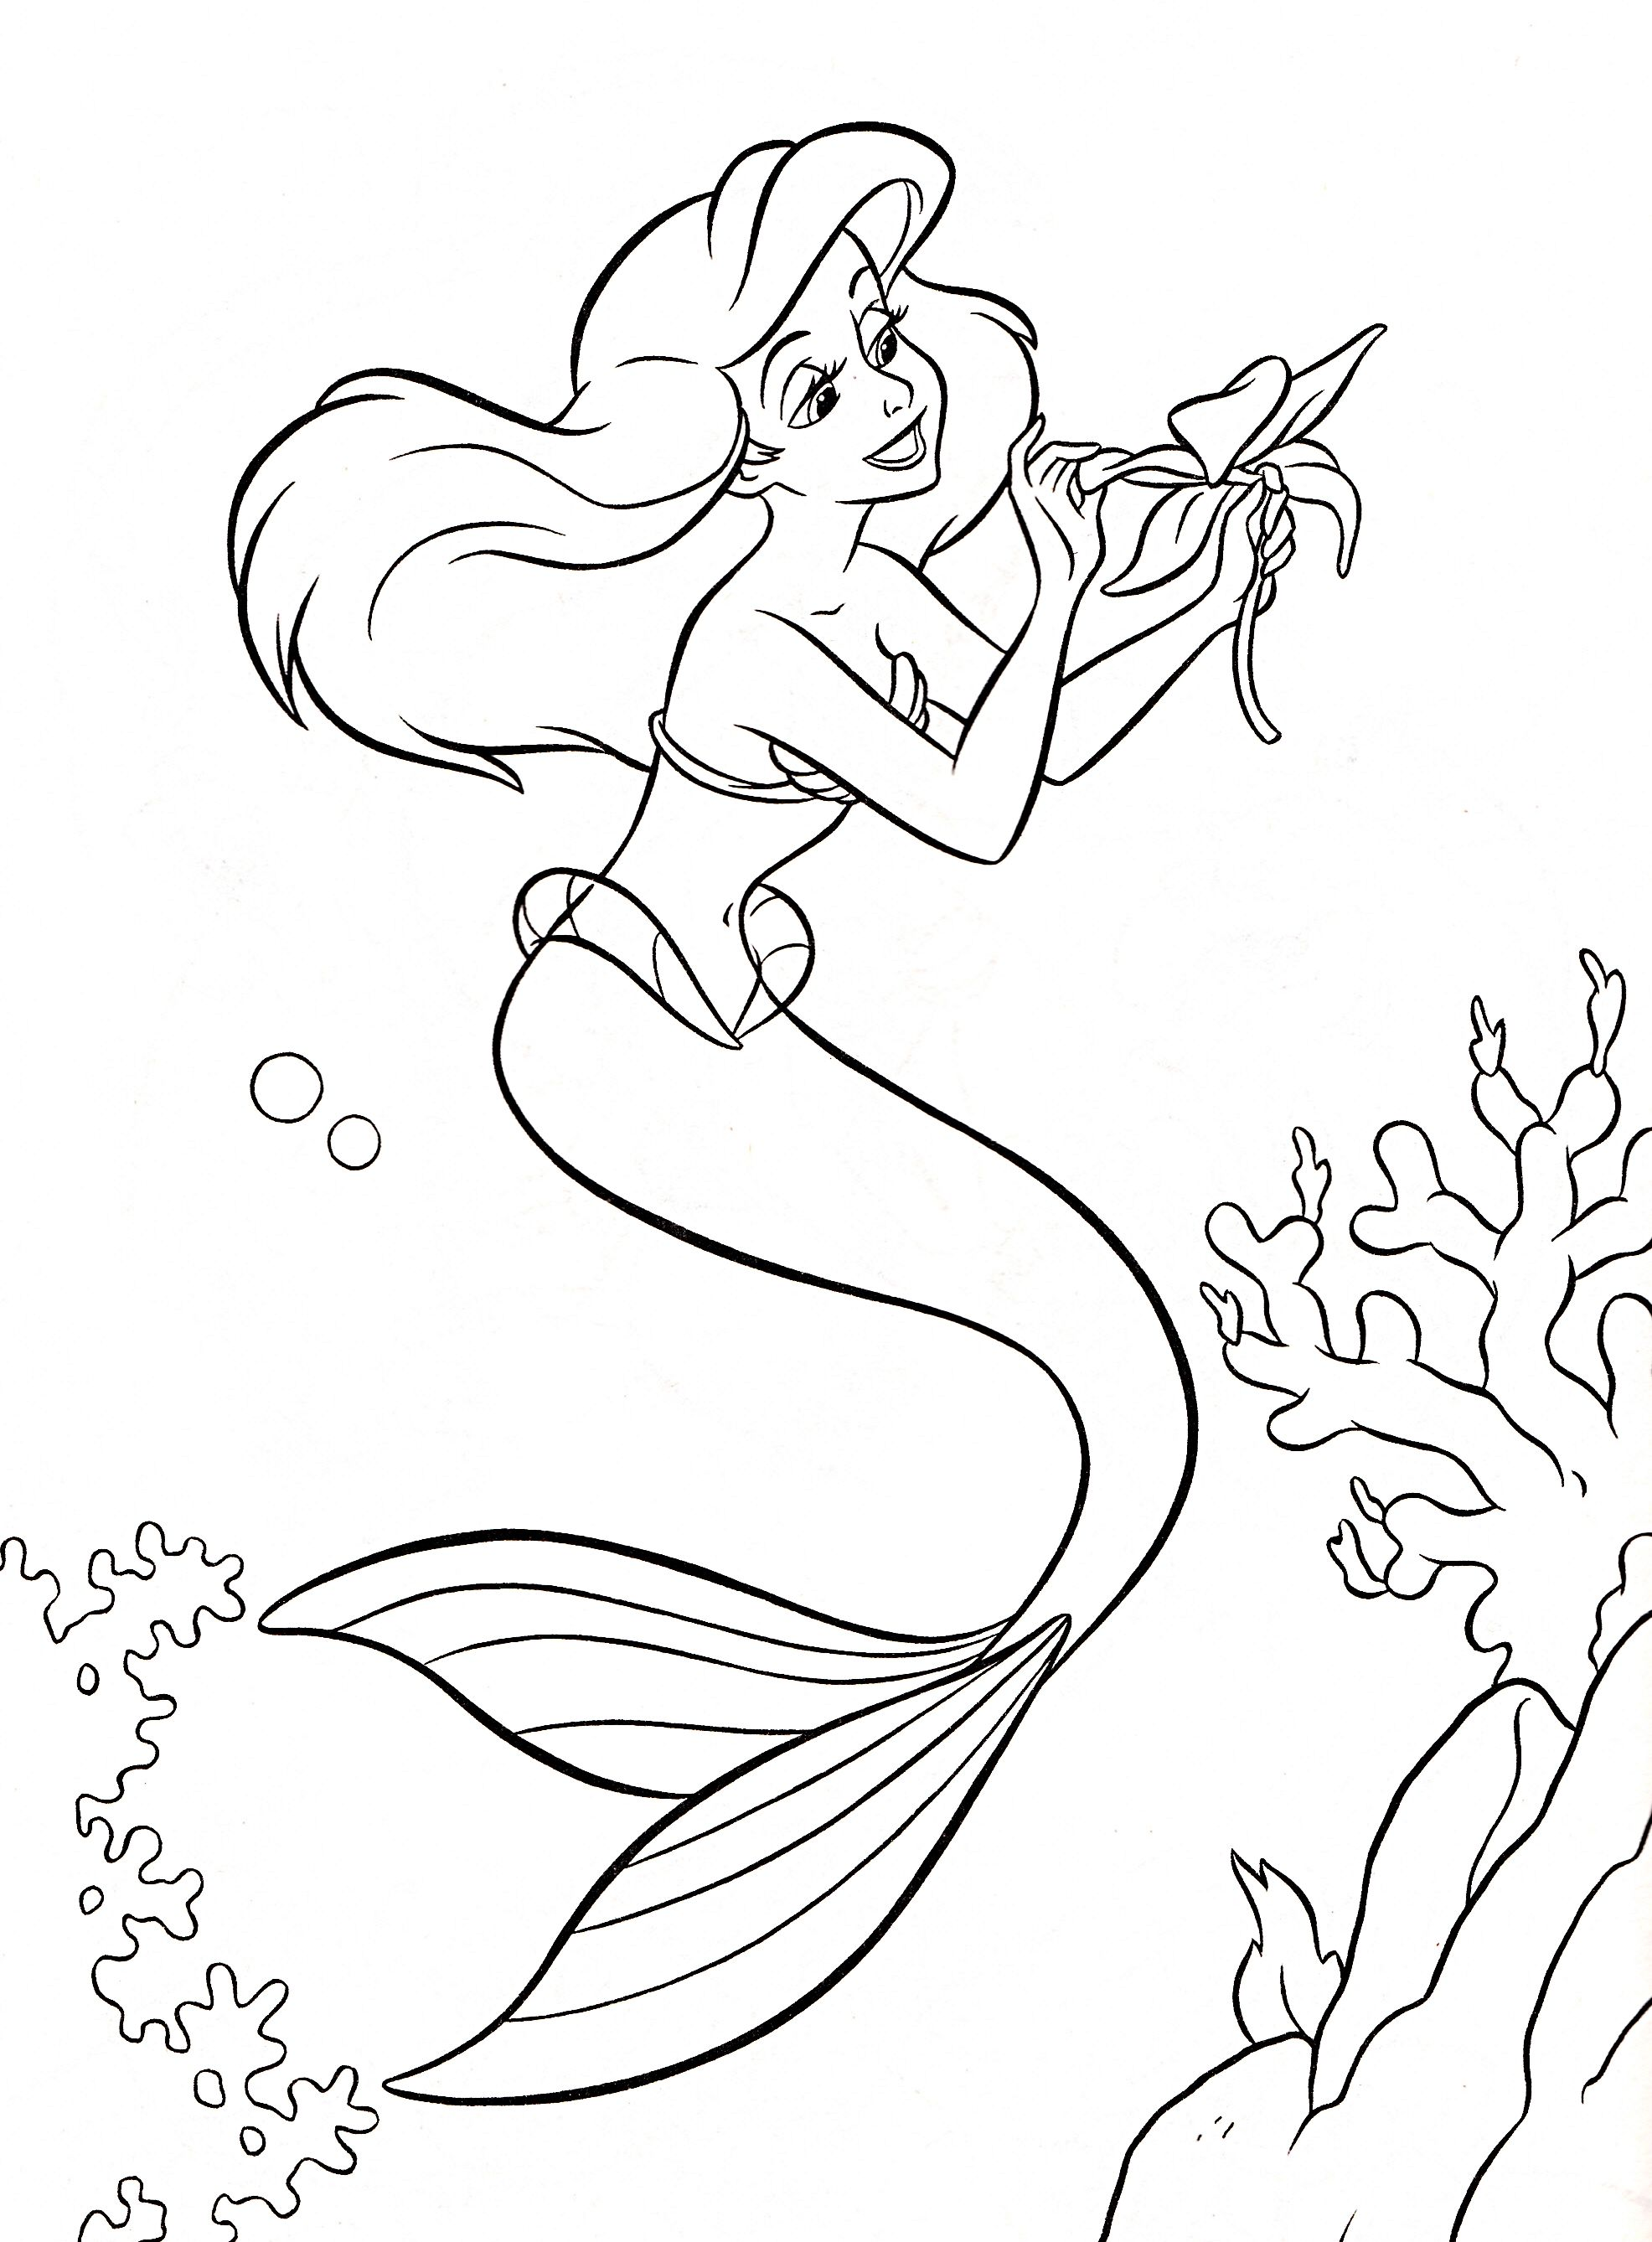 littlemermaidcoloringpages021 Coloring Pinterest Mermaid